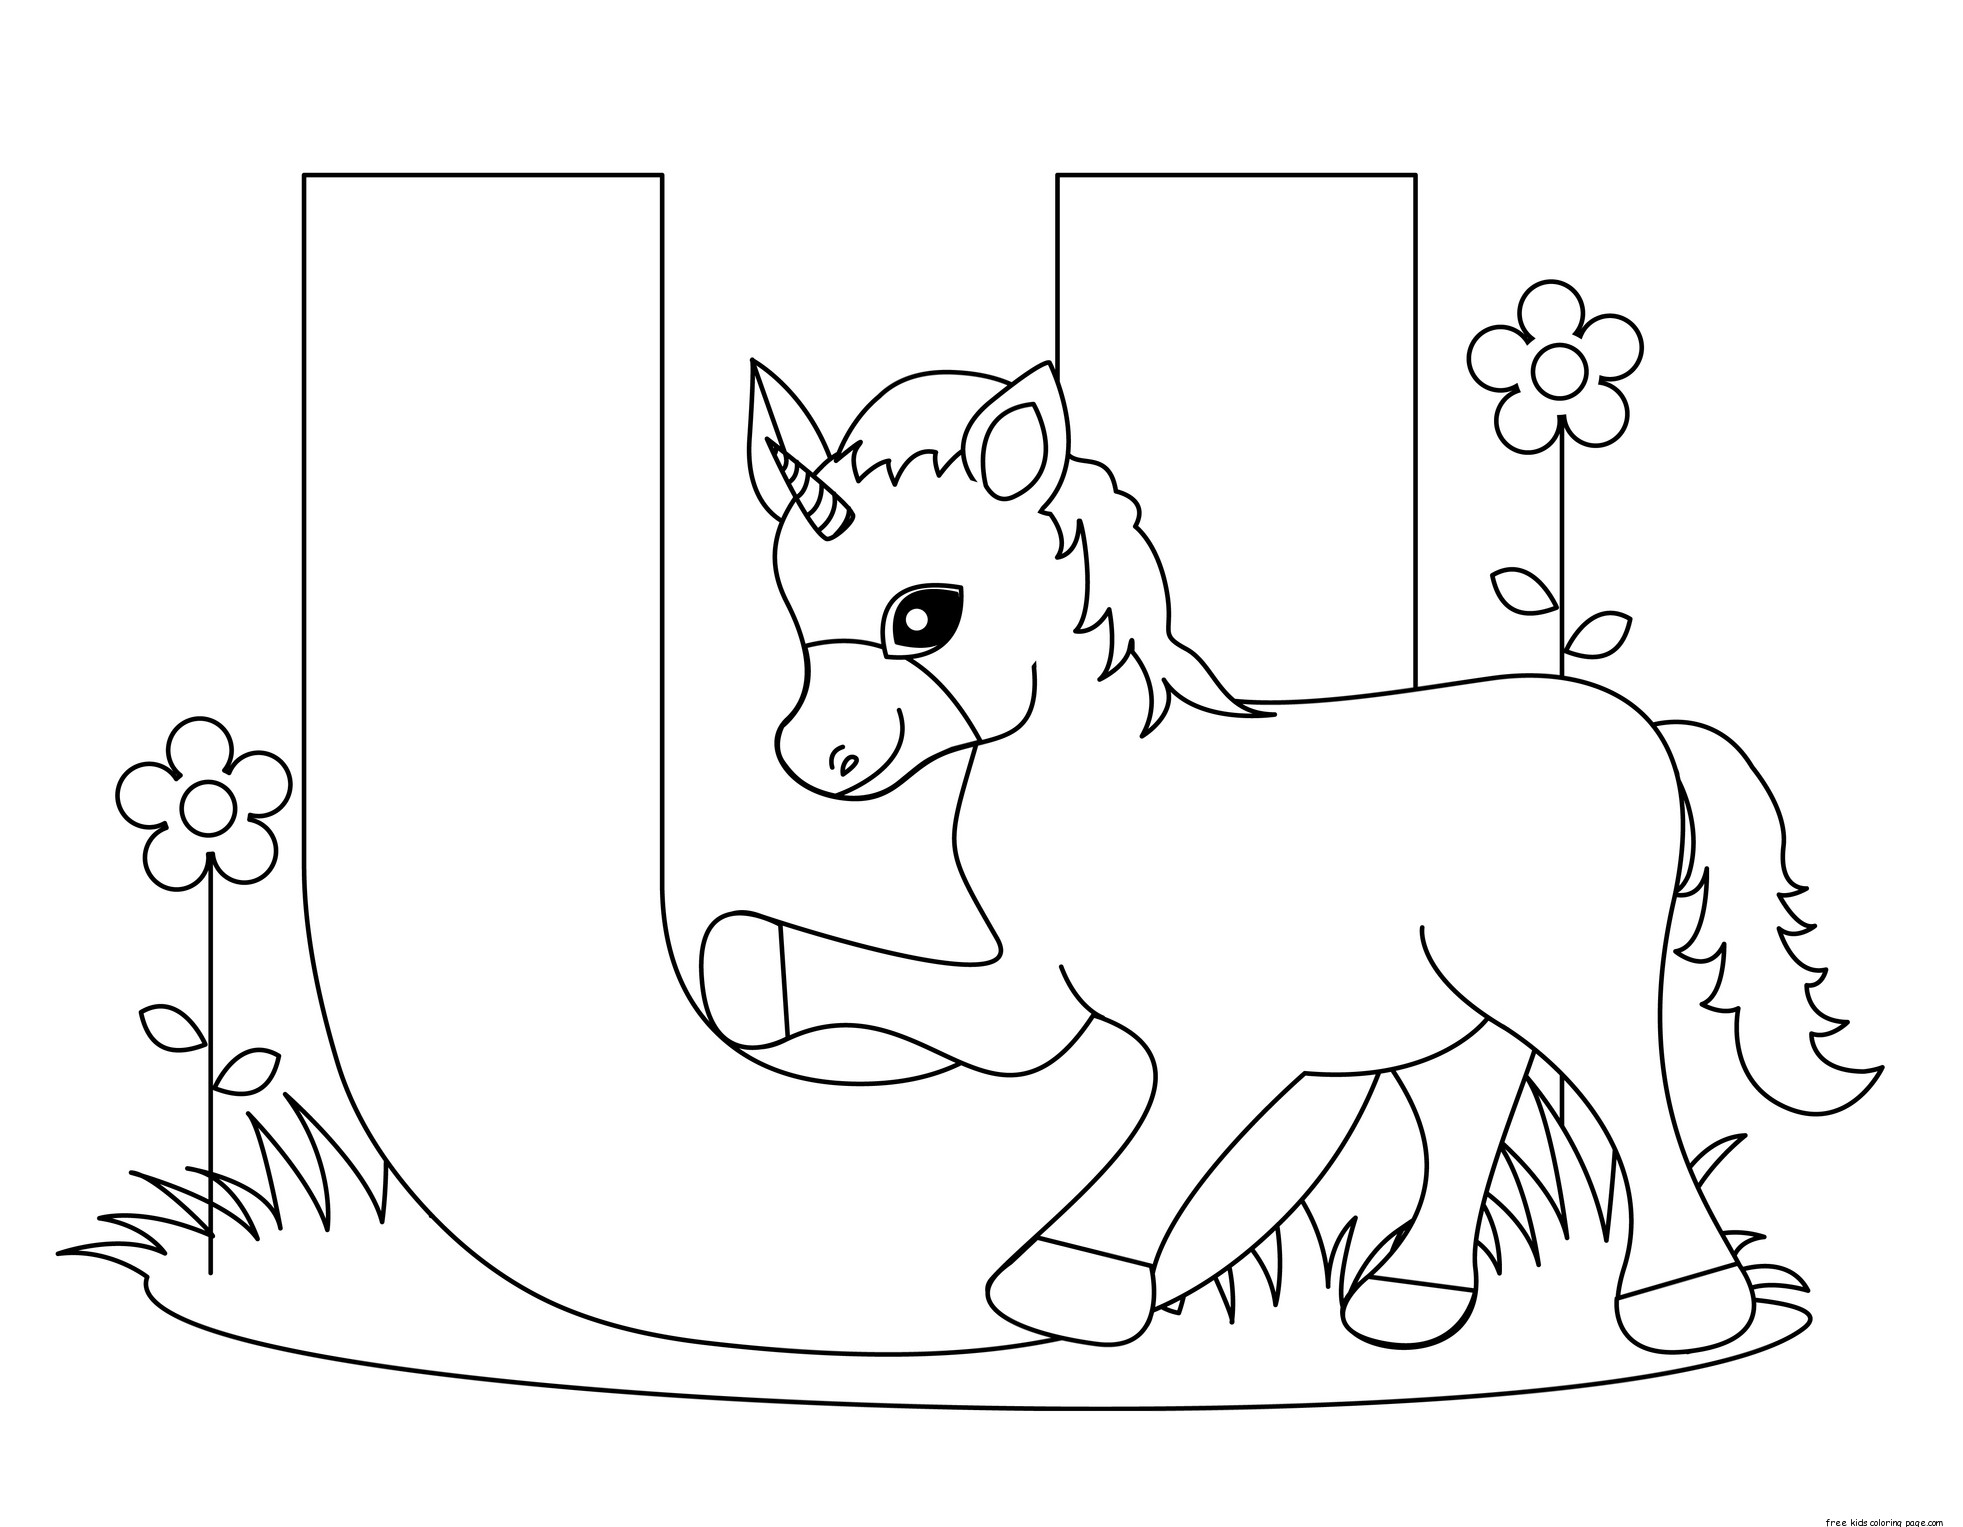 Printable Alphabet Letters Uppercase Letter U Is For Unicornfree Printable Coloring Pages For Kids